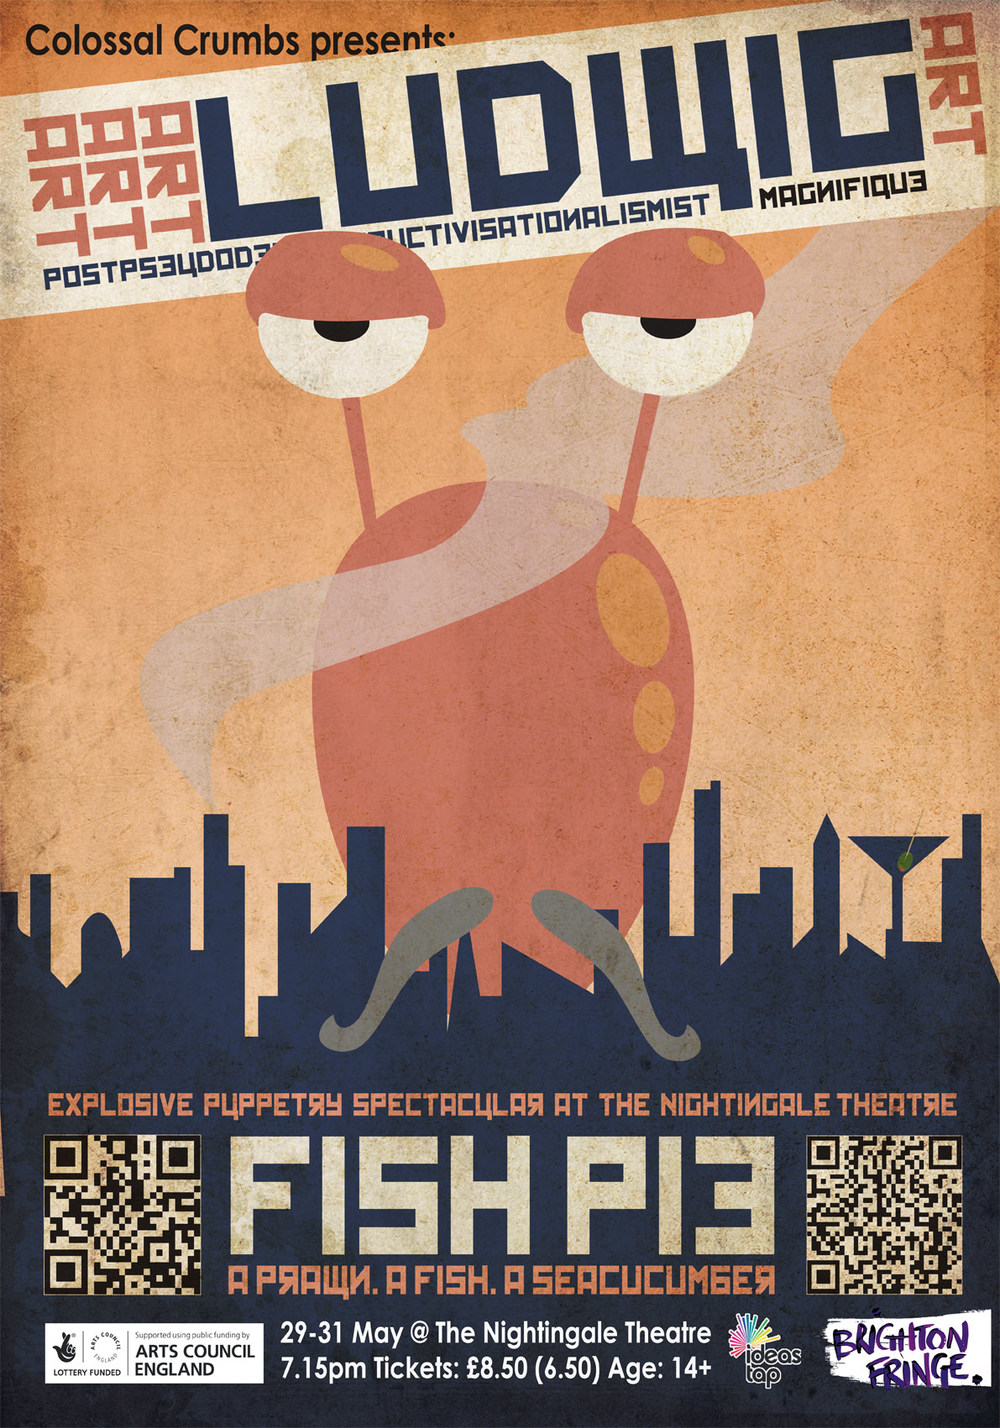 Poster design 1 of 3, for Colossal Crumbs' puppet show  FISHPIE . This poster was the  WINNER OF THE BRIGHTON FRINGE IMPACT AWARD 2013